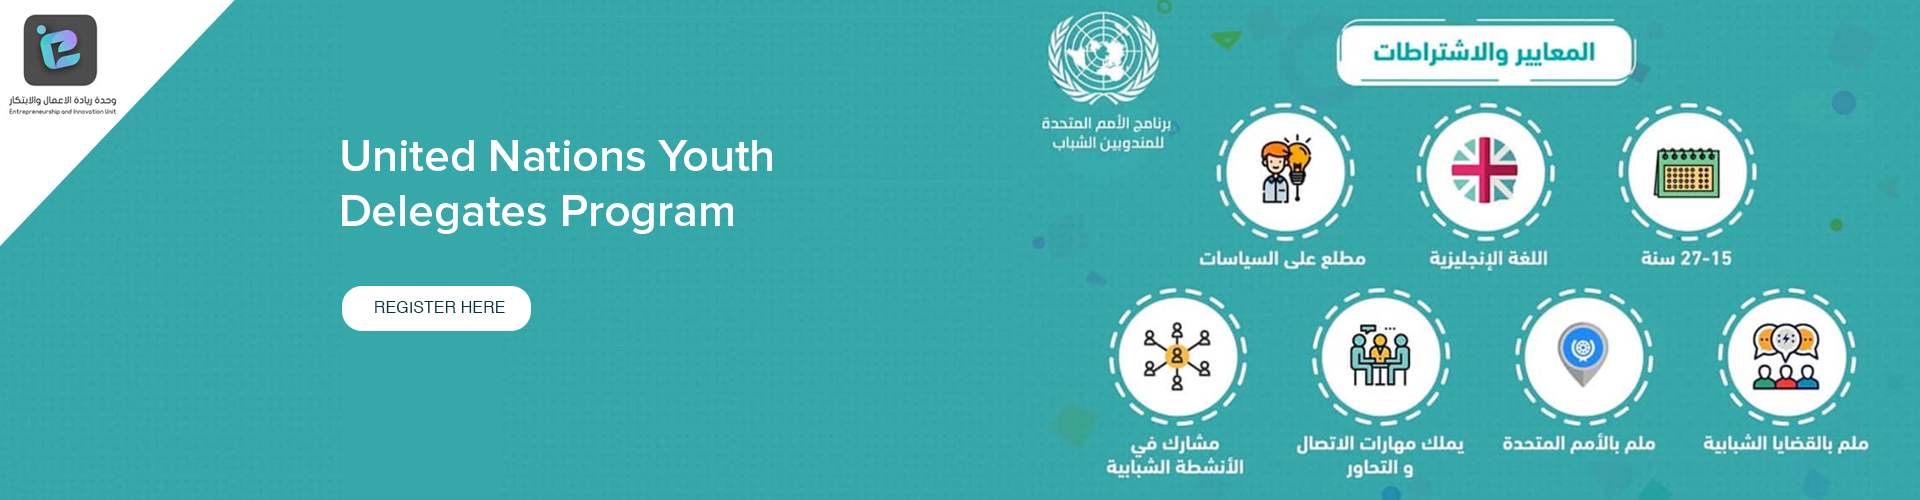 United Nations Youth Delegates Program